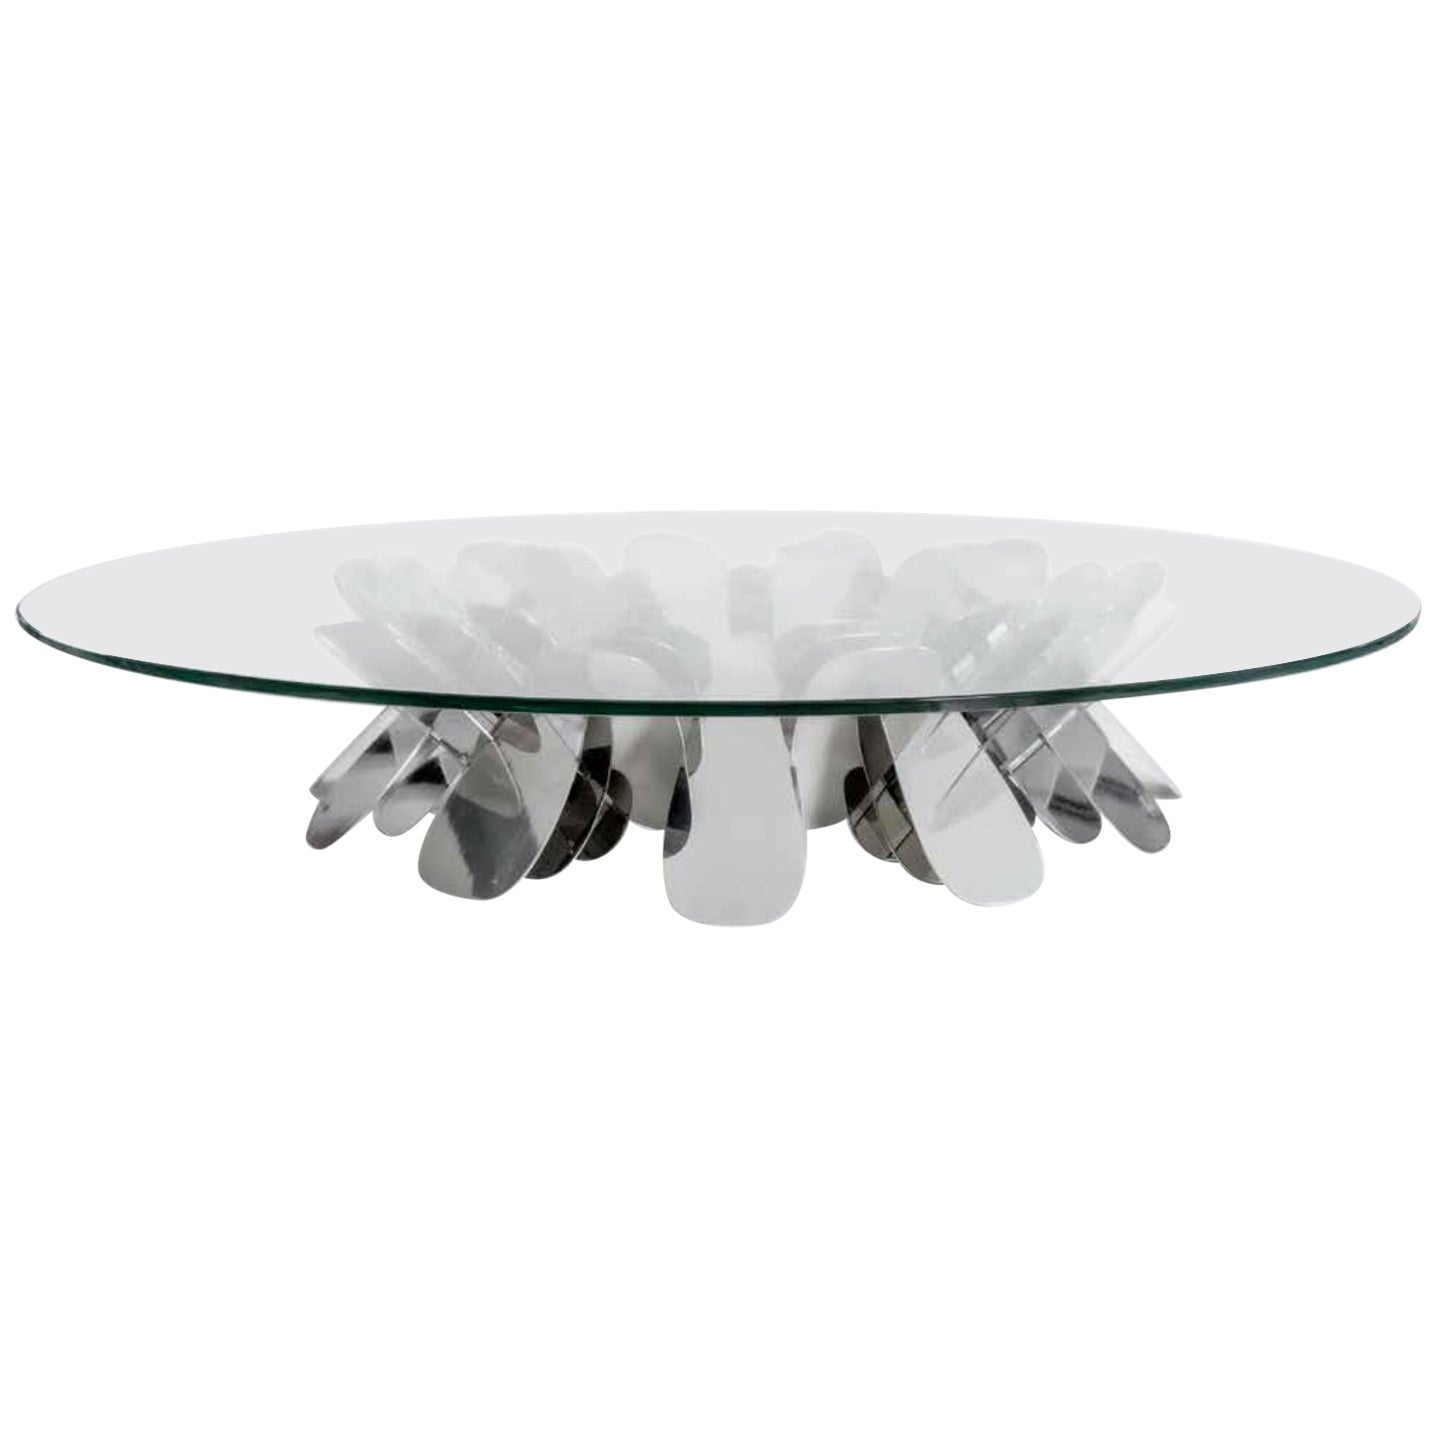 Contemporary Glass Center Table in Polished Stainless Steel